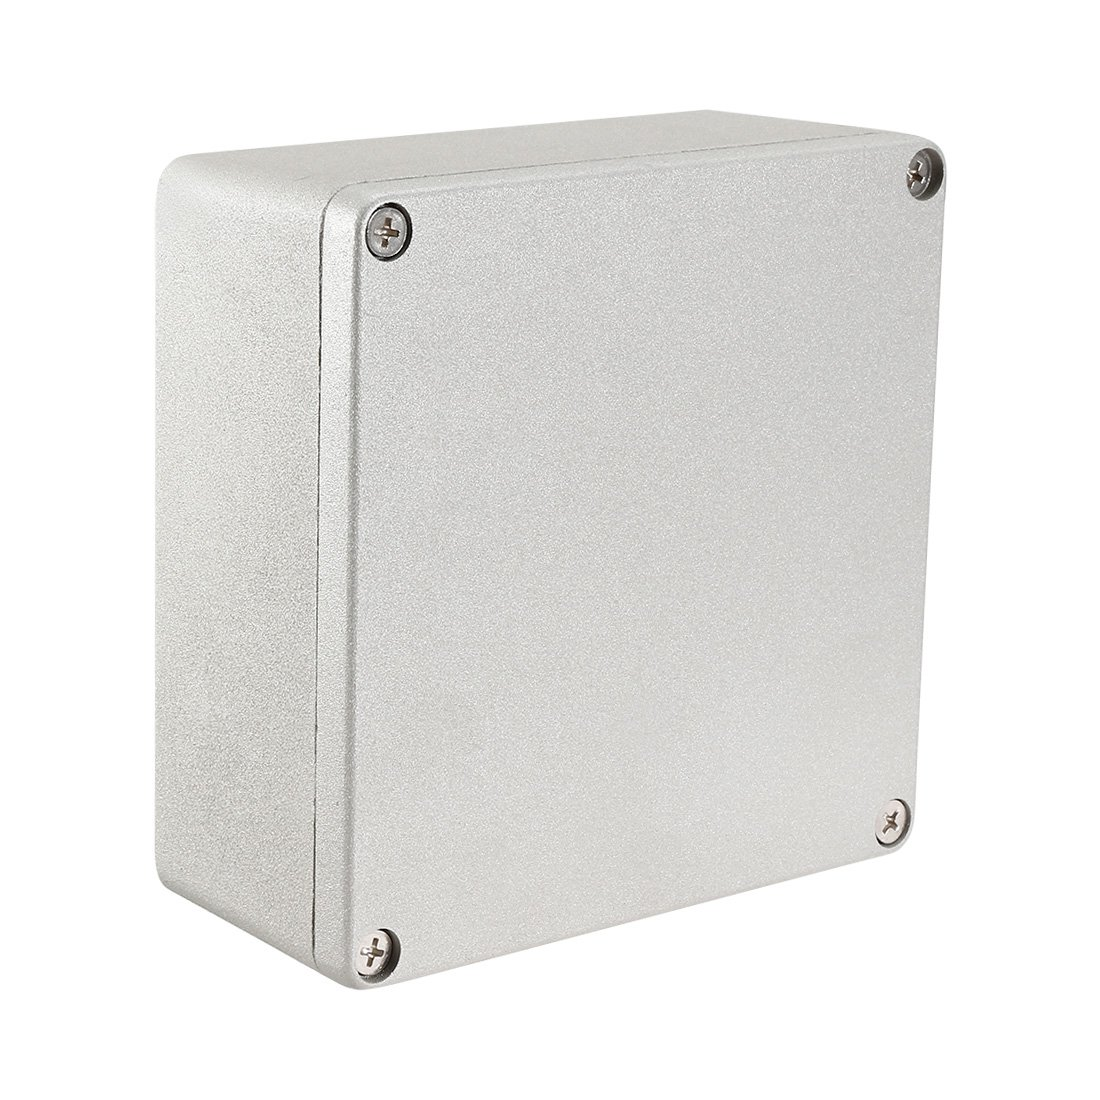 uxcell 6.3''x6.3''x2.8'' Aluminum Junction Boxes Electrical Project Metal Enclosure Waterproof IP65 w Two Horns/Six screws, Abrasion Resistant, Good Heat Dissipation for Outdoor